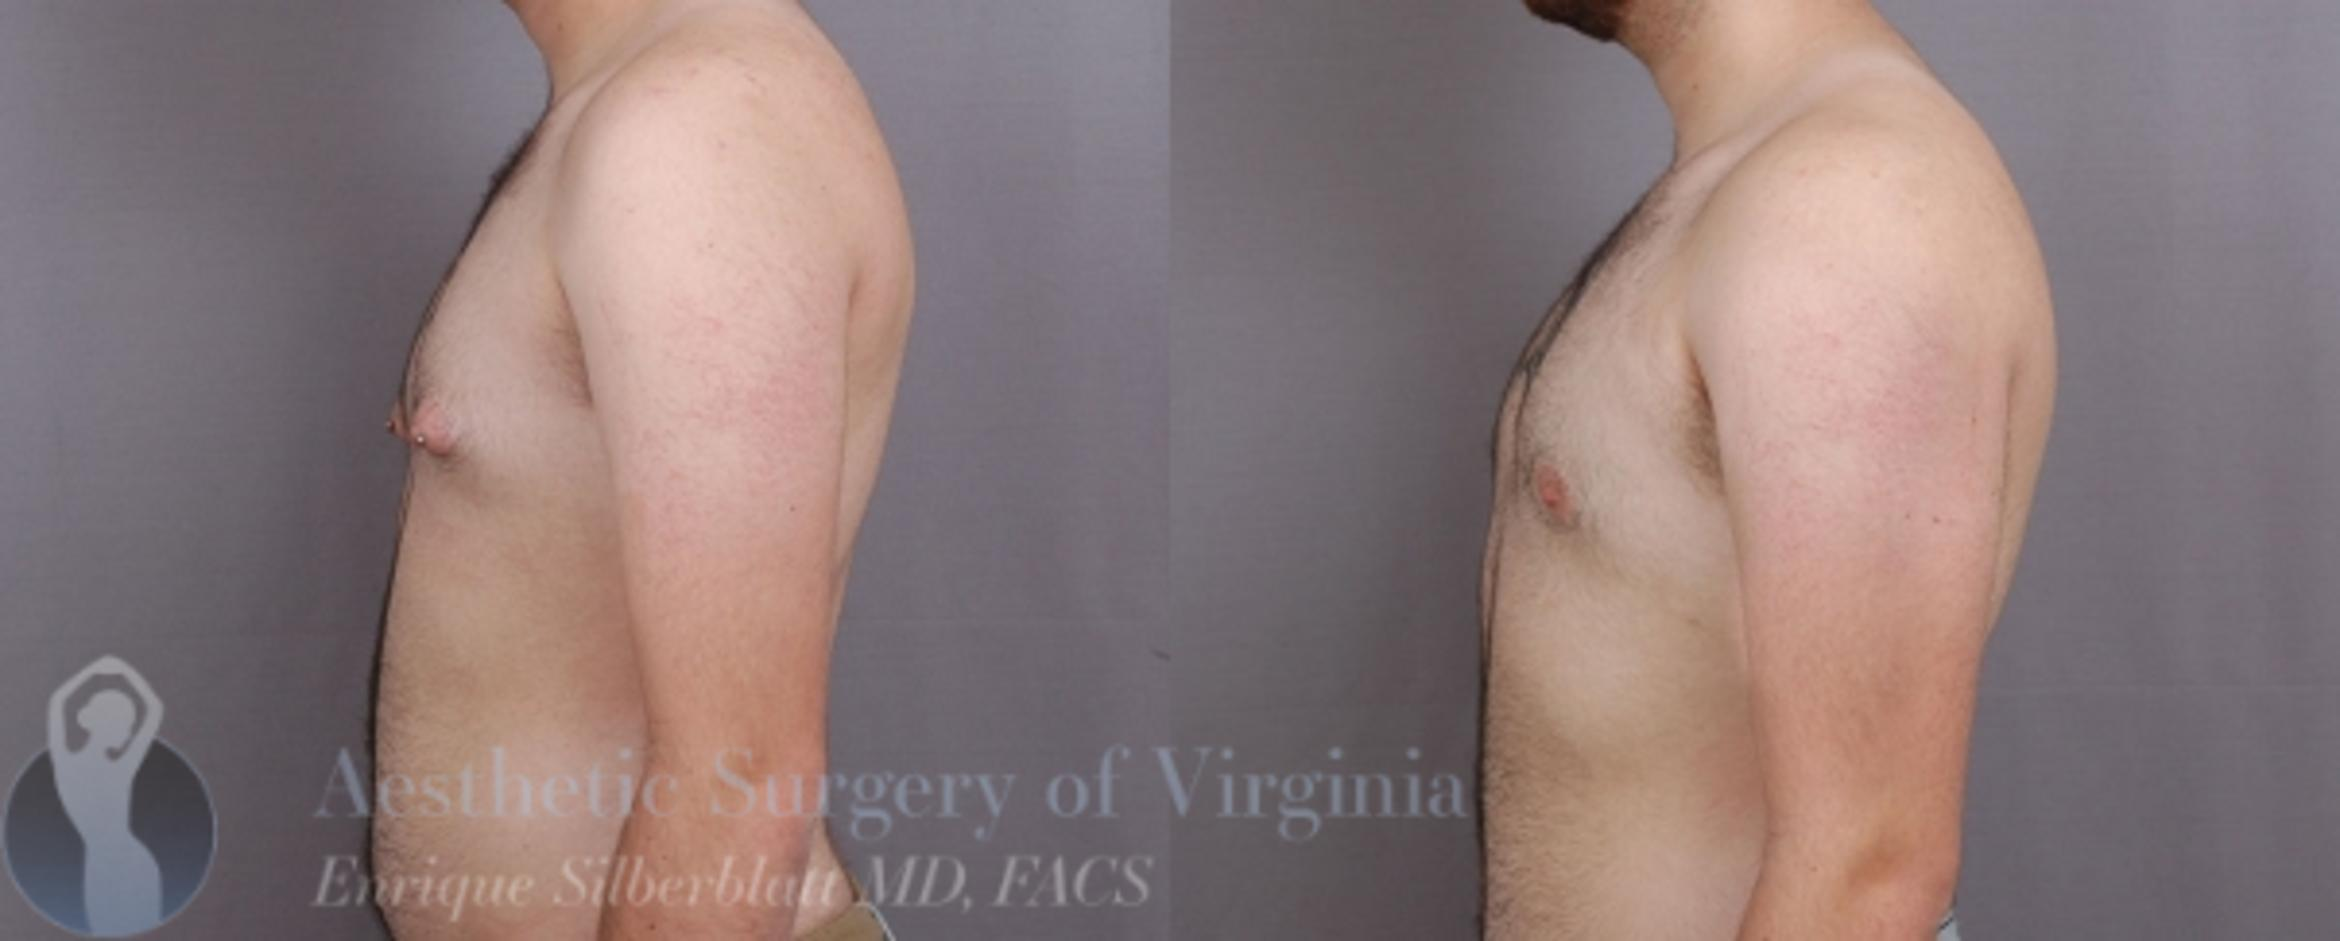 Female to Male Breast Surgery Case 58 Before & After View #3 | Roanoke, VA | Aesthetic Surgery of Virginia: Enrique Silberblatt, MD